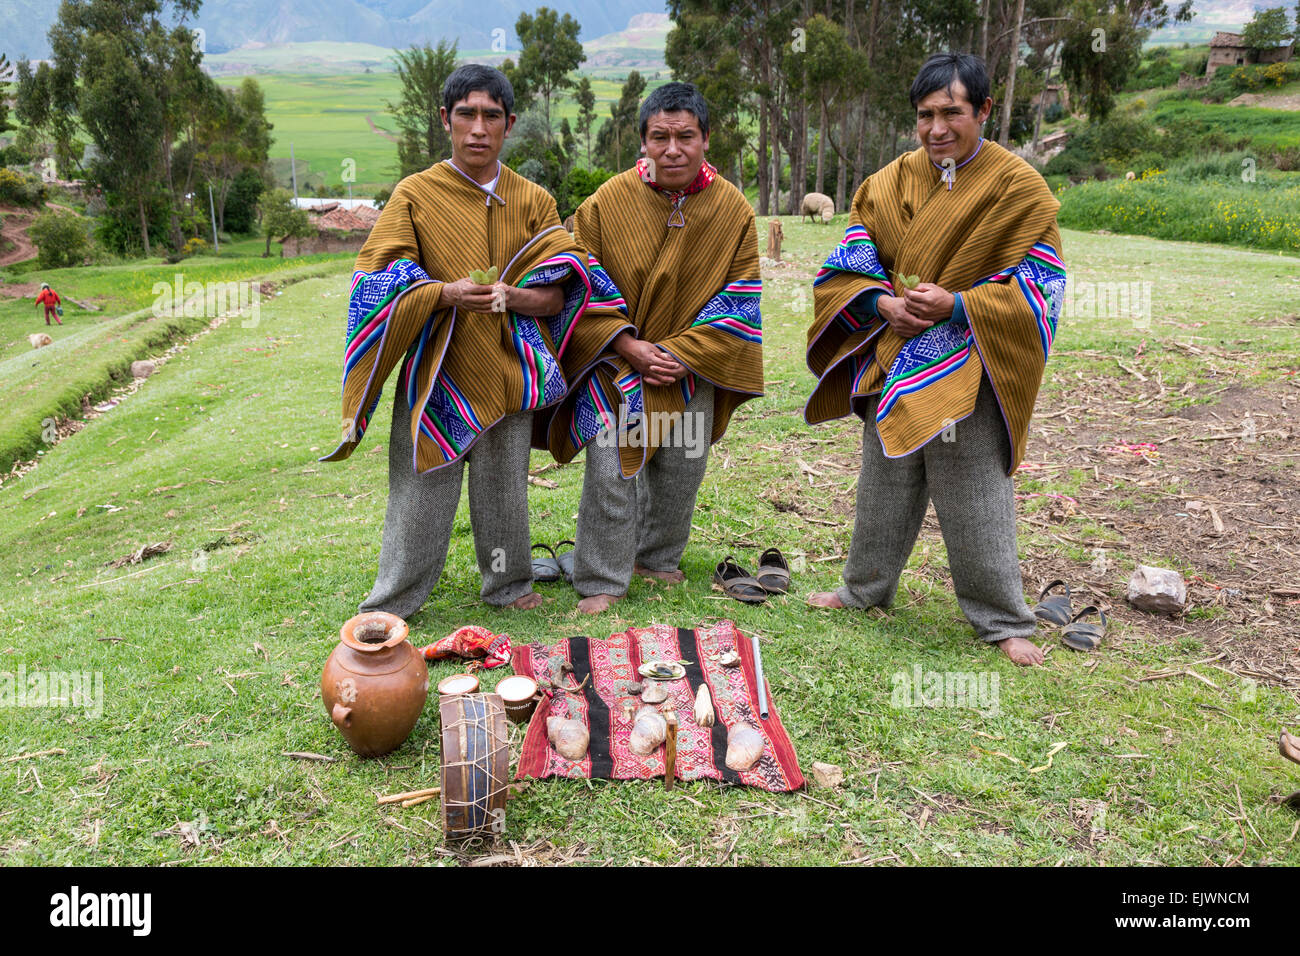 Peru, Urubamba Valley, Quechua Village of Misminay.  Village Men Performing a Welcoming Ceremony for Guests. - Stock Image